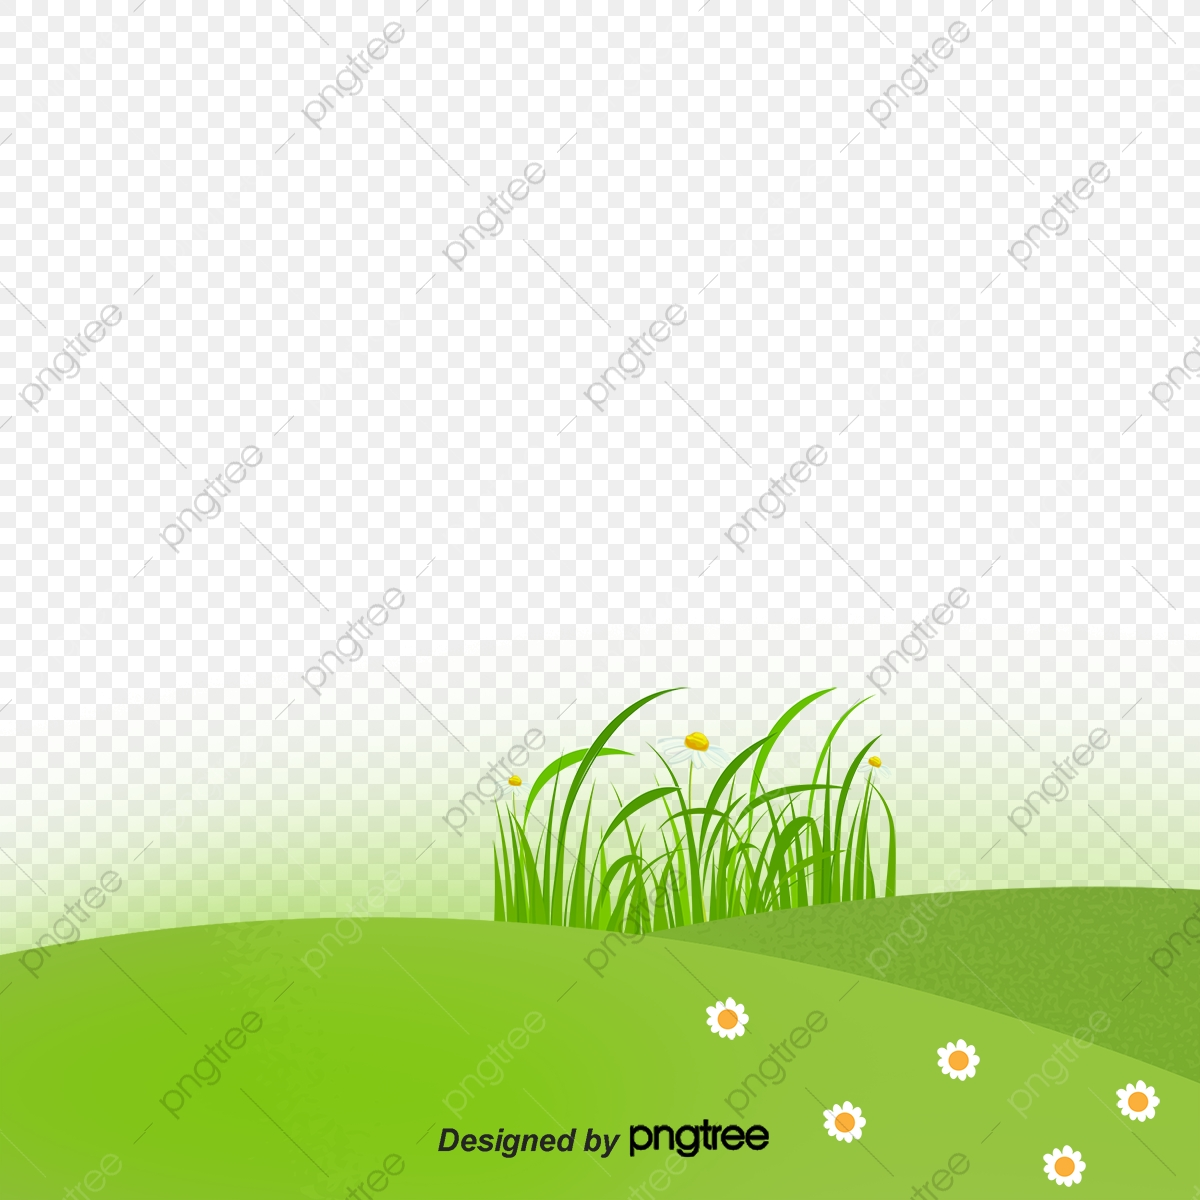 cartoon green grass cartoon vector green vector grass vector png transparent clipart image and psd file for free download https pngtree com freepng cartoon green grass 3097246 html